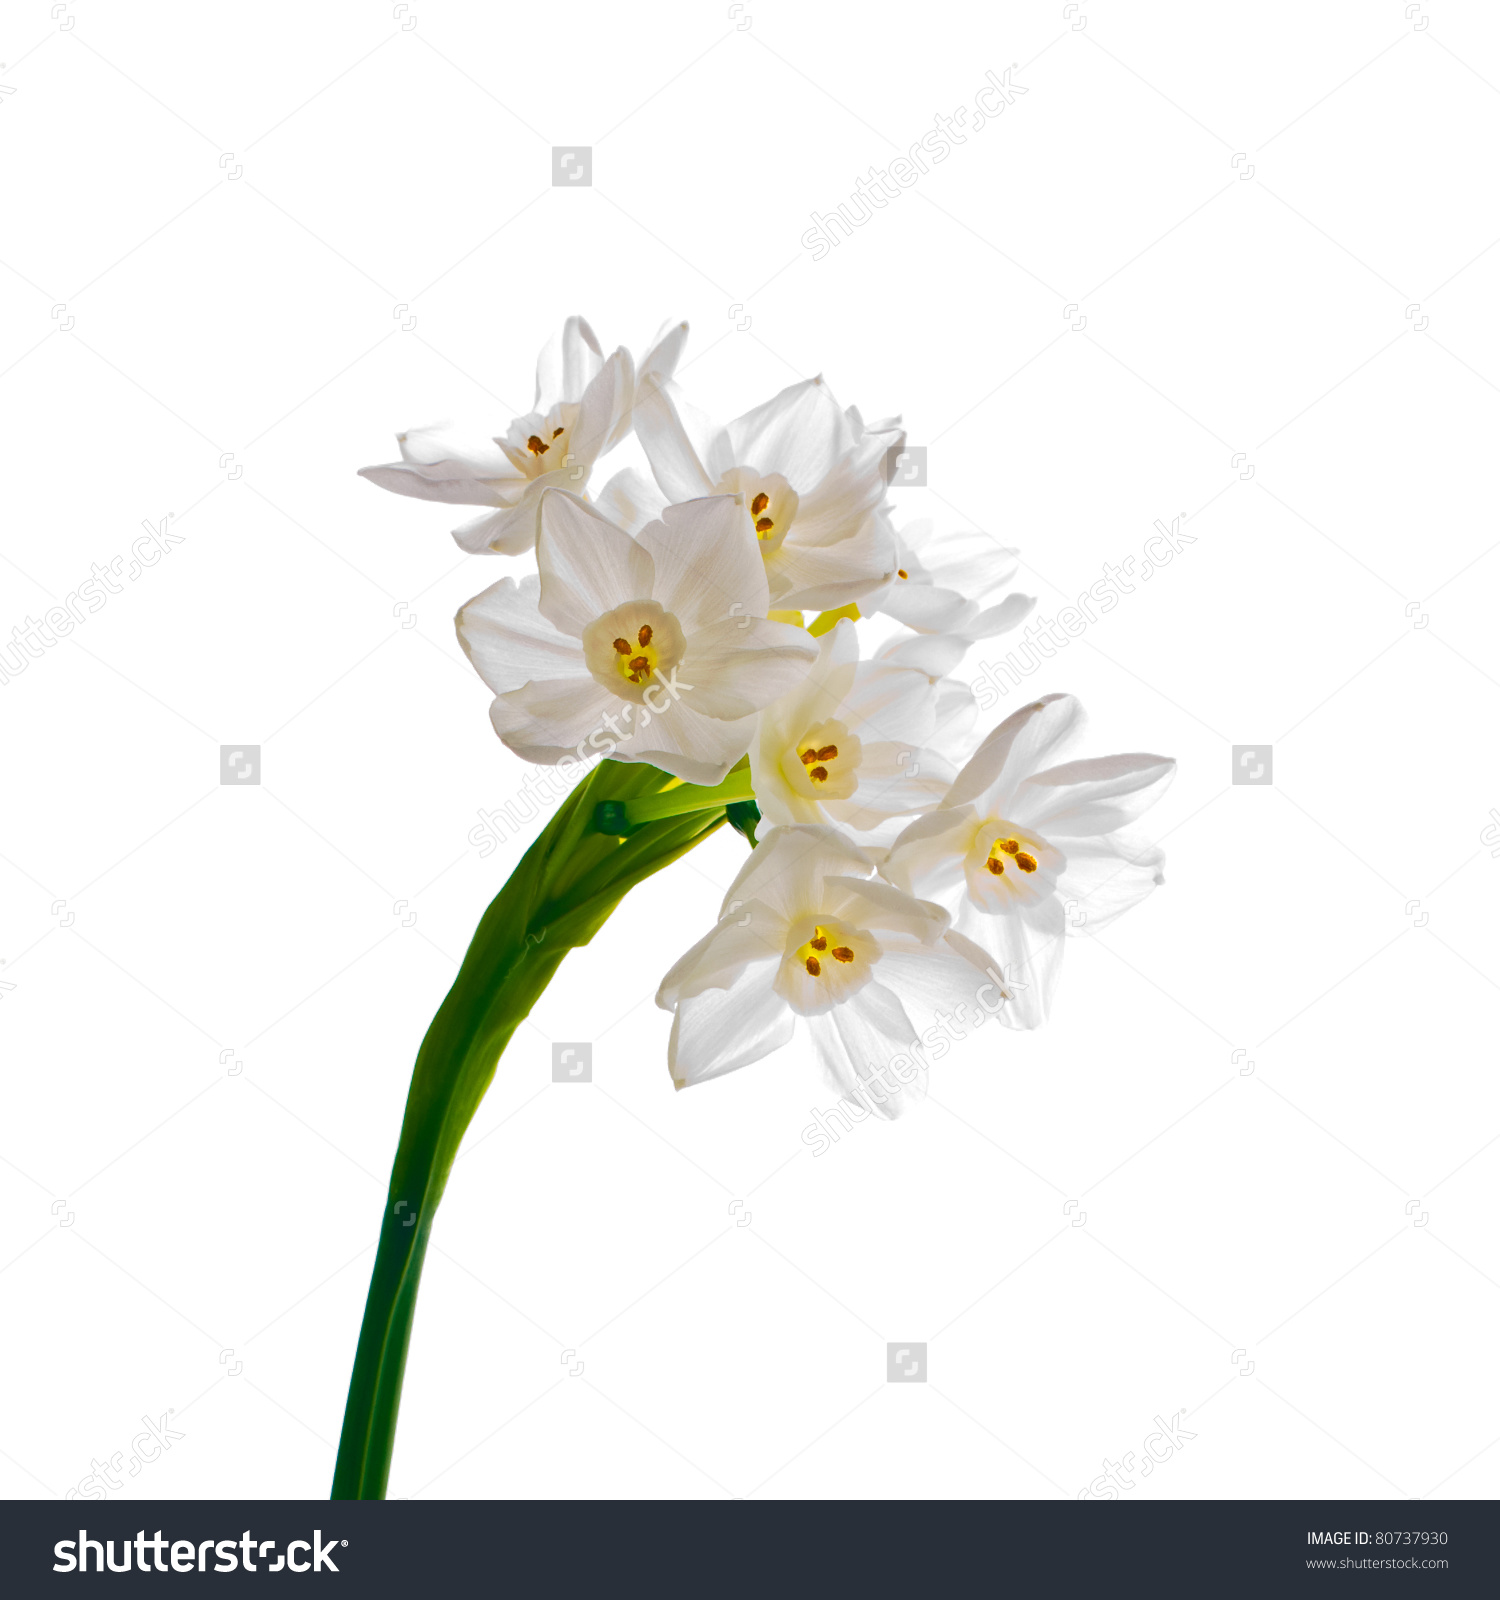 Paperwhite Narcissus clipart #1, Download drawings